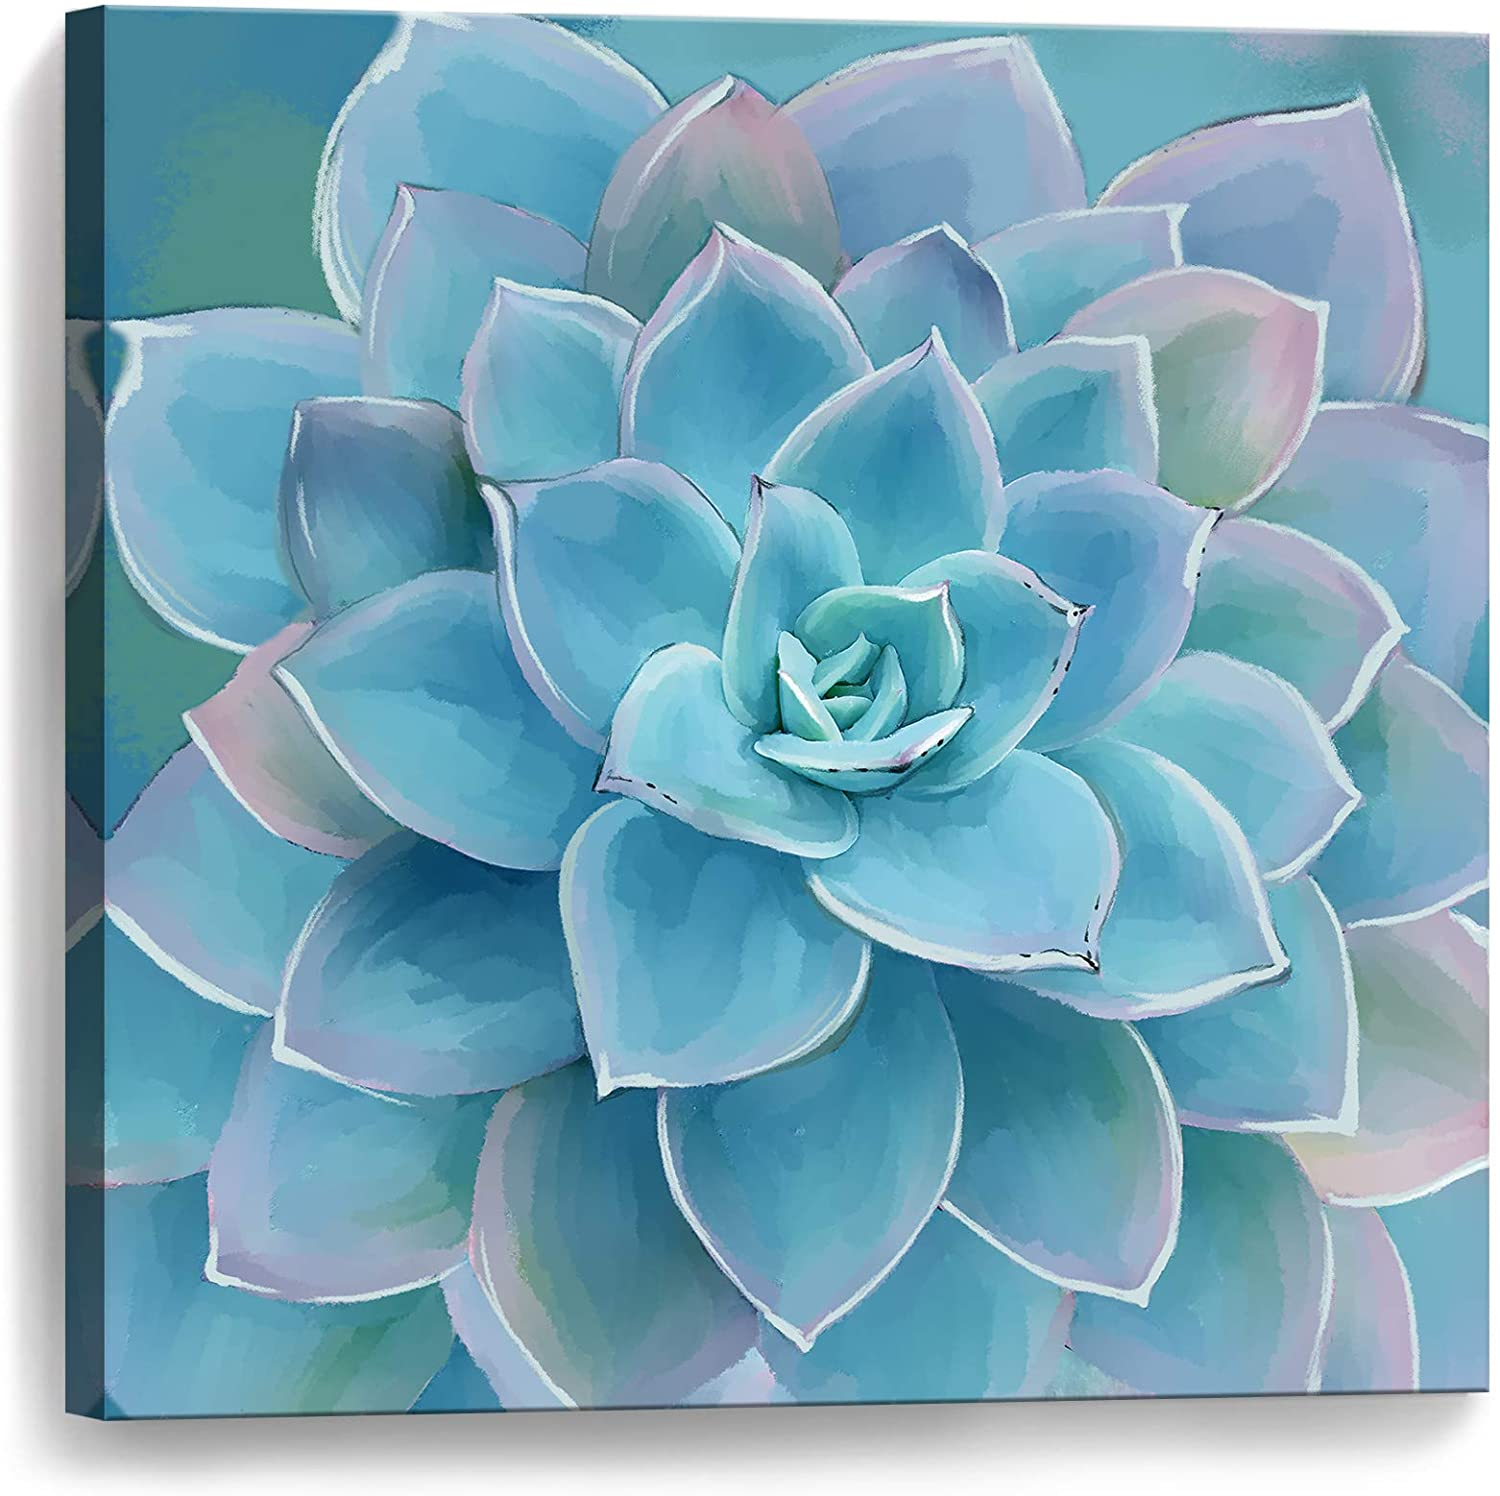 Blue-Green Succulents Bathroom Decor Wall Art Framed Modern Popular Wall Plants Decorations Canvas Prints Artwork Wall Decor for Bedroom Blue-Green Flower Pictures Size 14x14 Easy to Hang